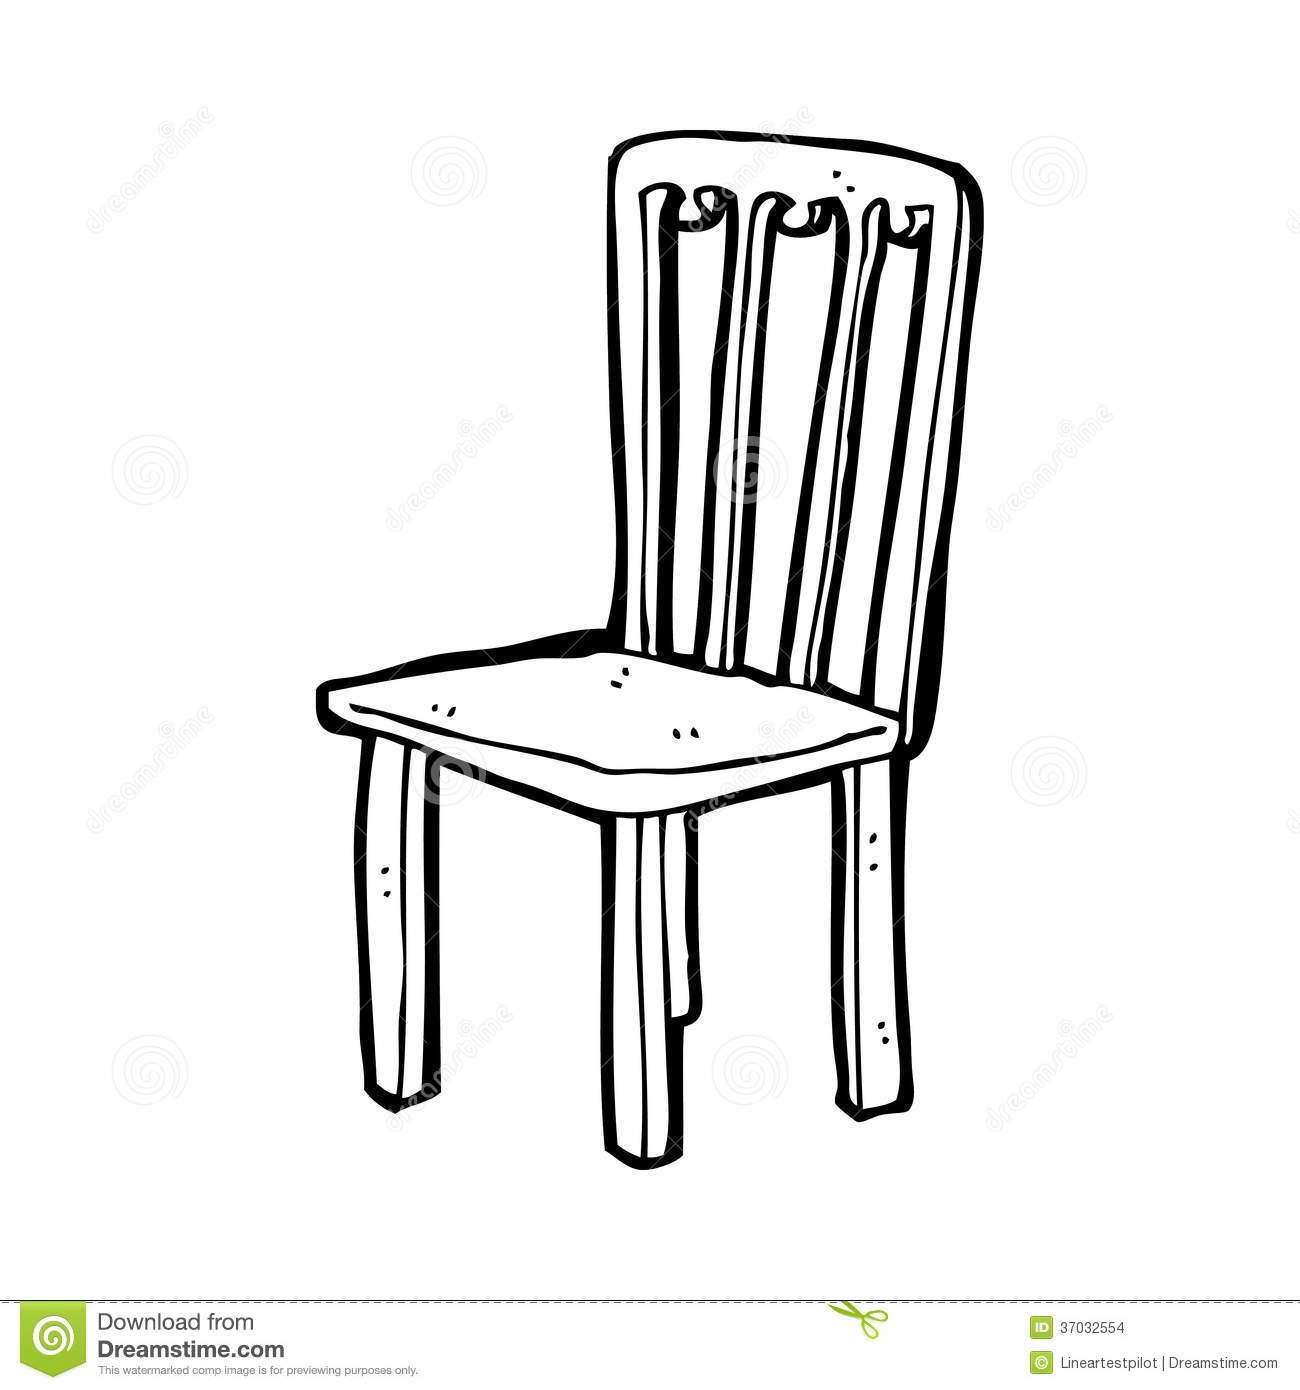 Black And White Chair Clipart.